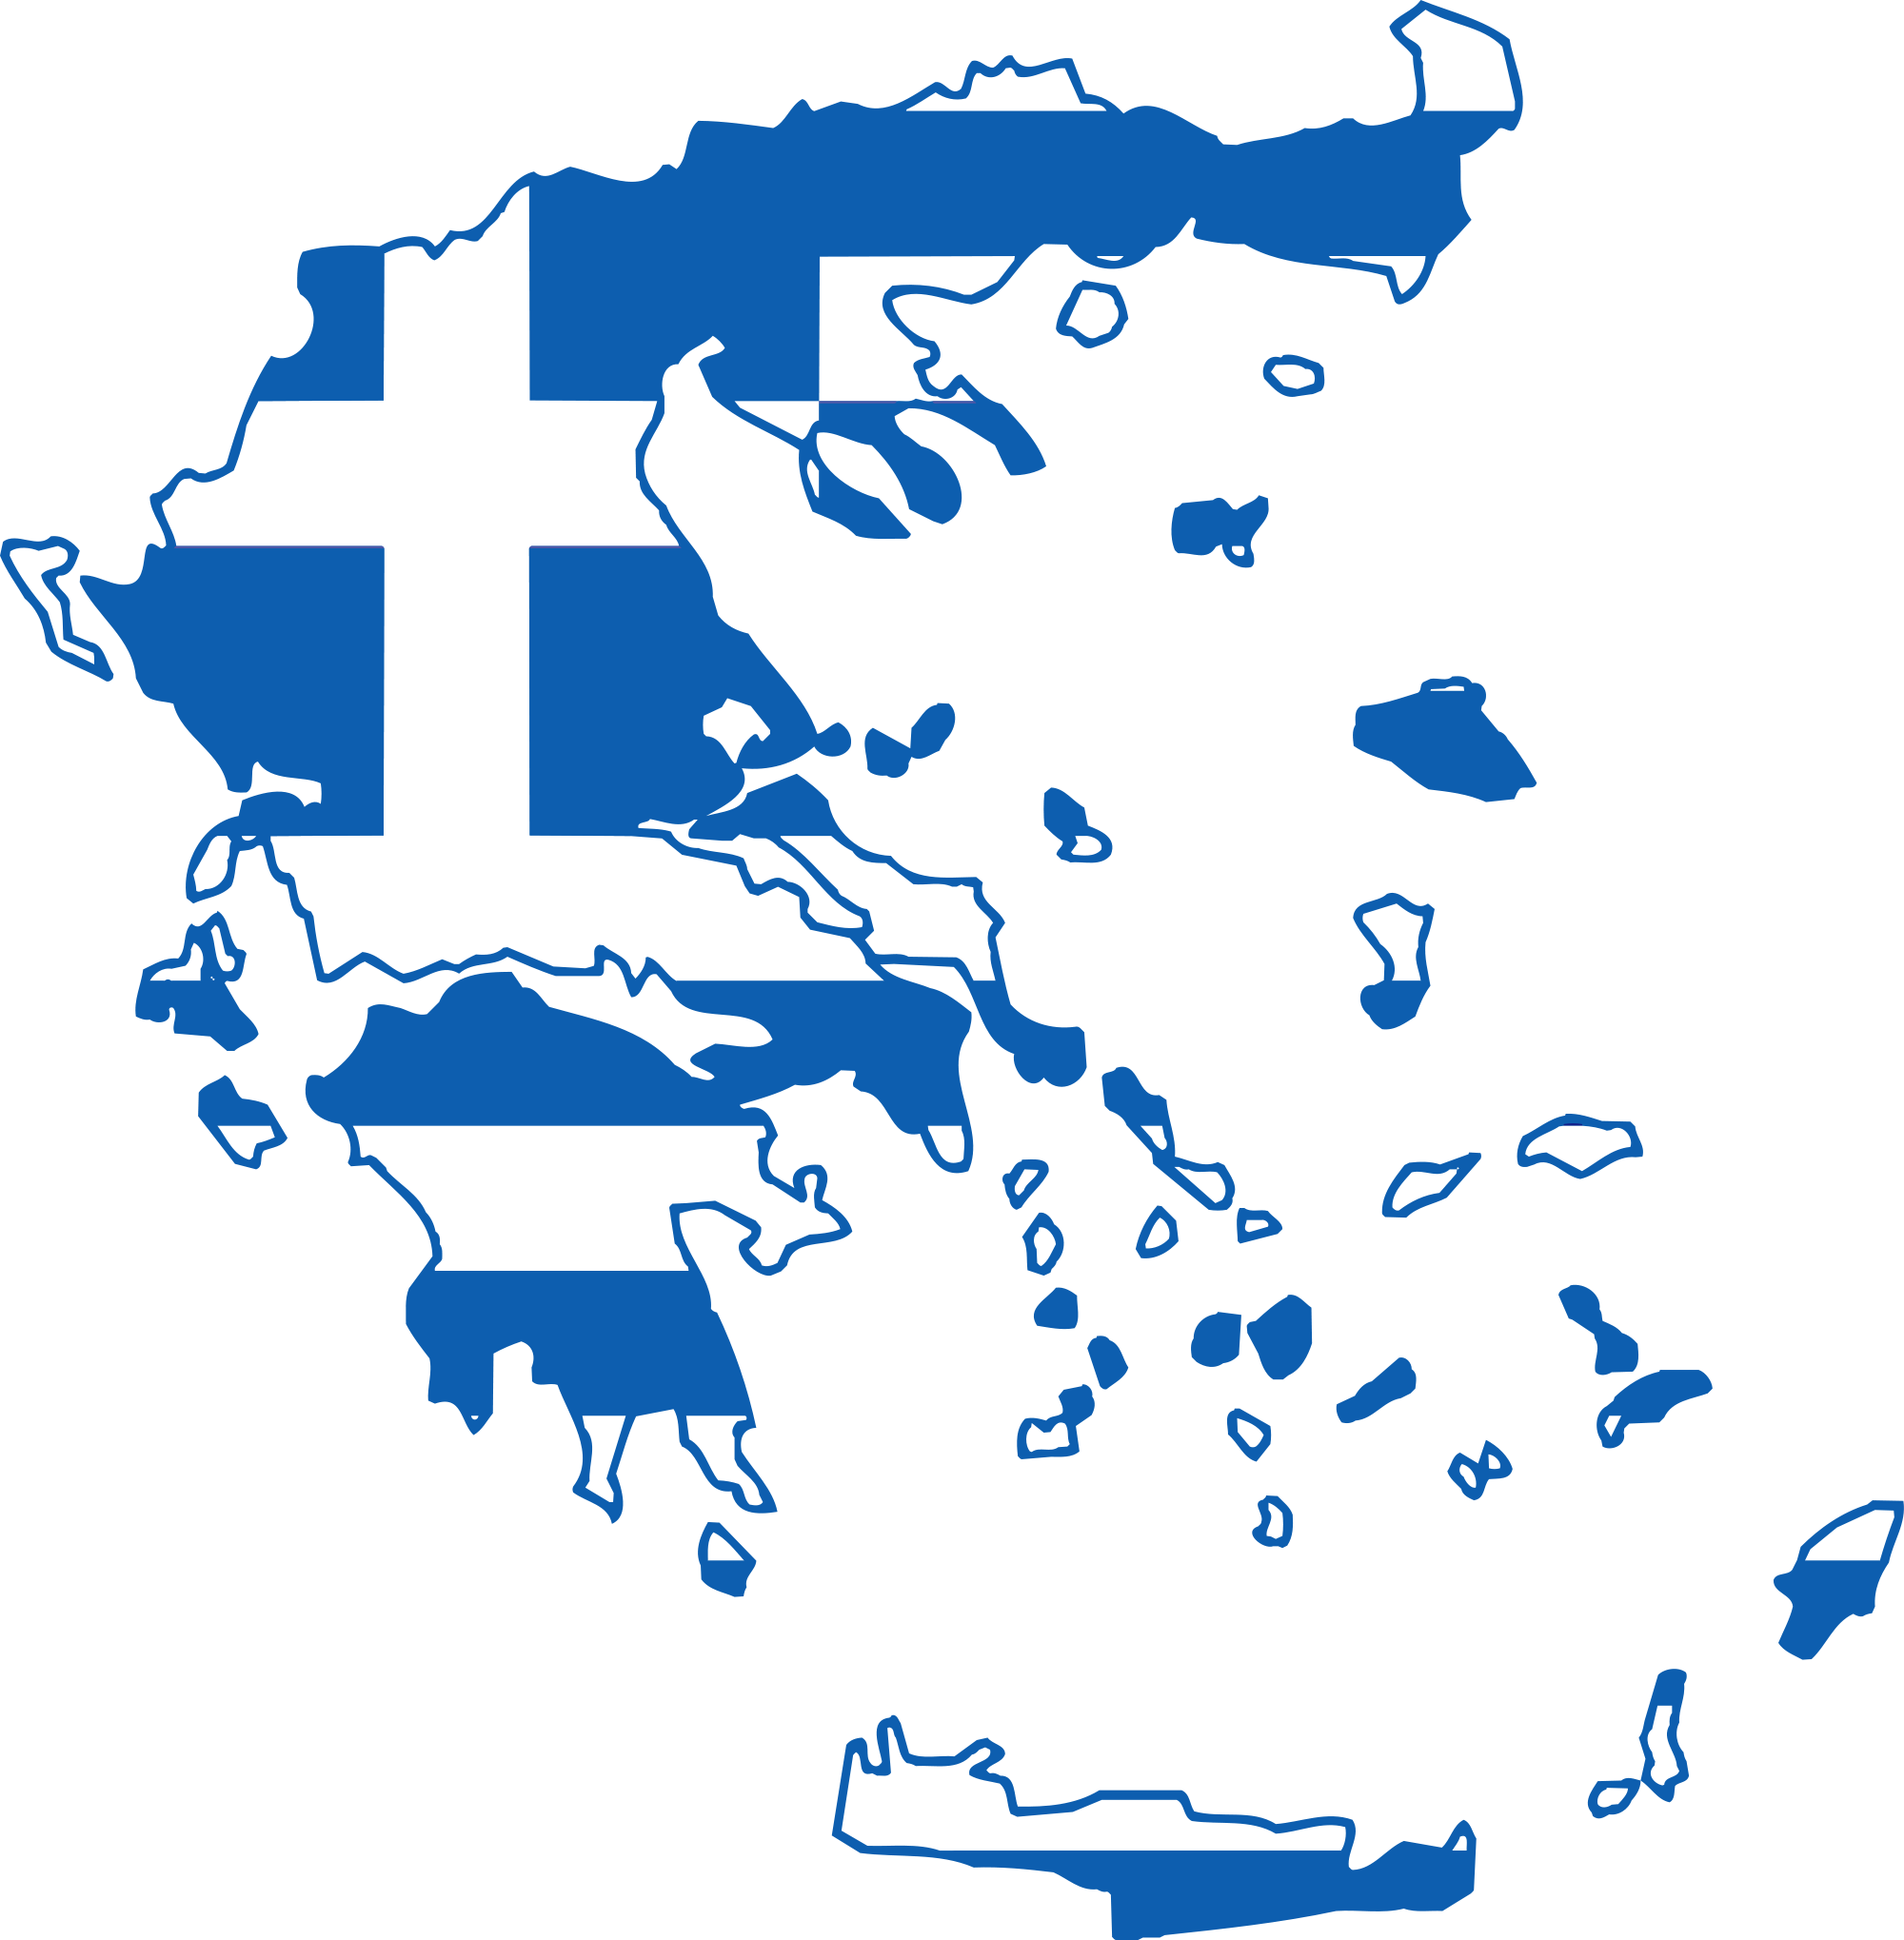 Atlas of wikimedia commons. Greece clipart ancient geography greece